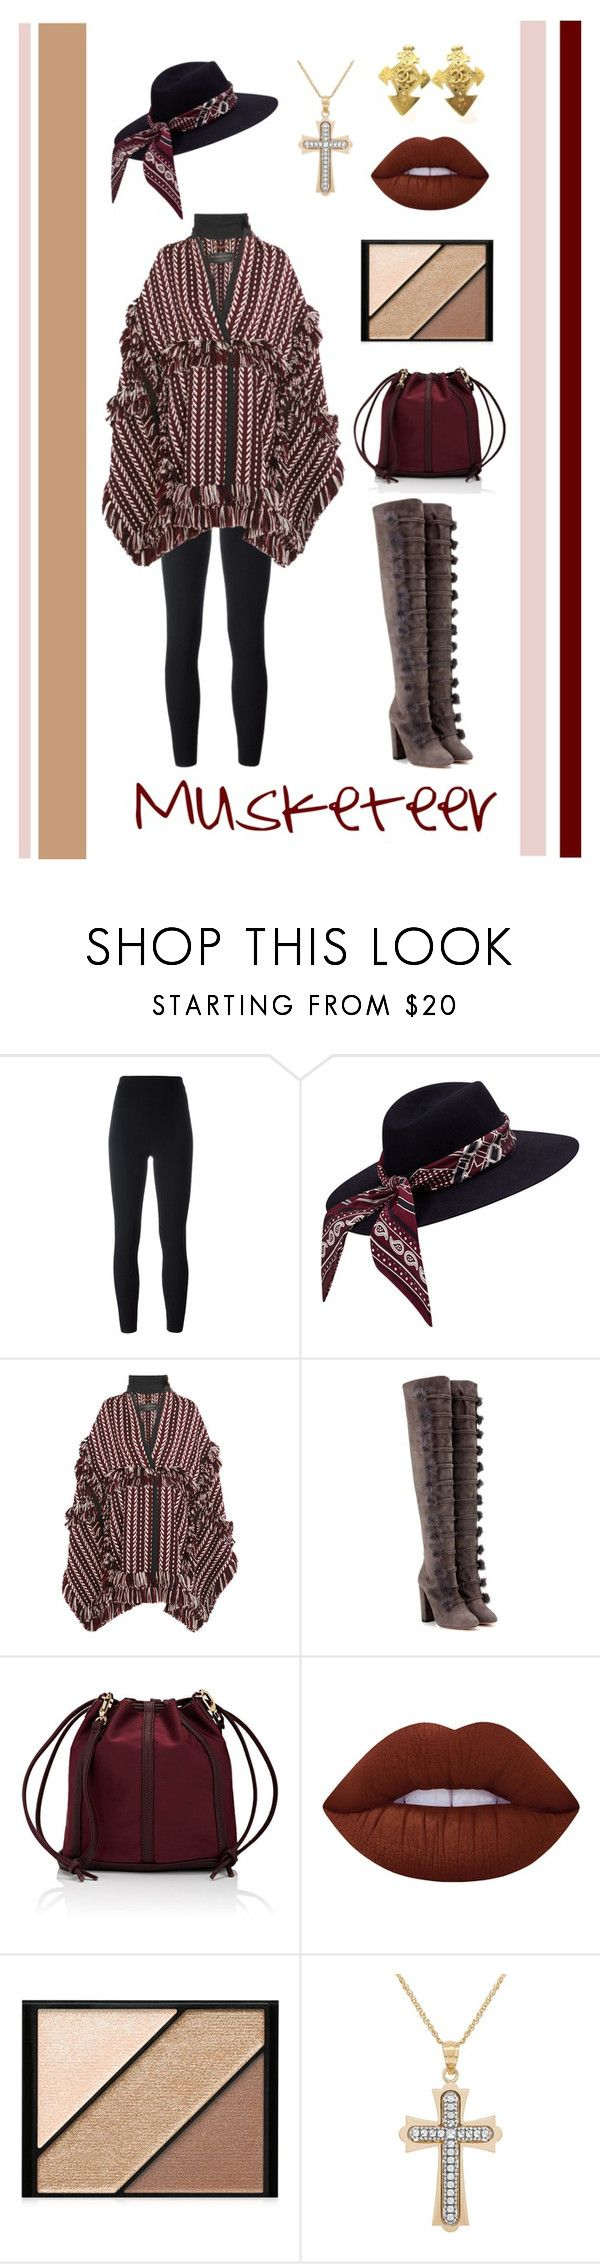 """Musketeer"" by belen-cool-look ❤ liked on Polyvore featuring Yeezy by Kanye West, Burberry, Aquazzura, Deux Lux, Lime Crime, Elizabeth Arden, Lord & Taylor and Chanel"